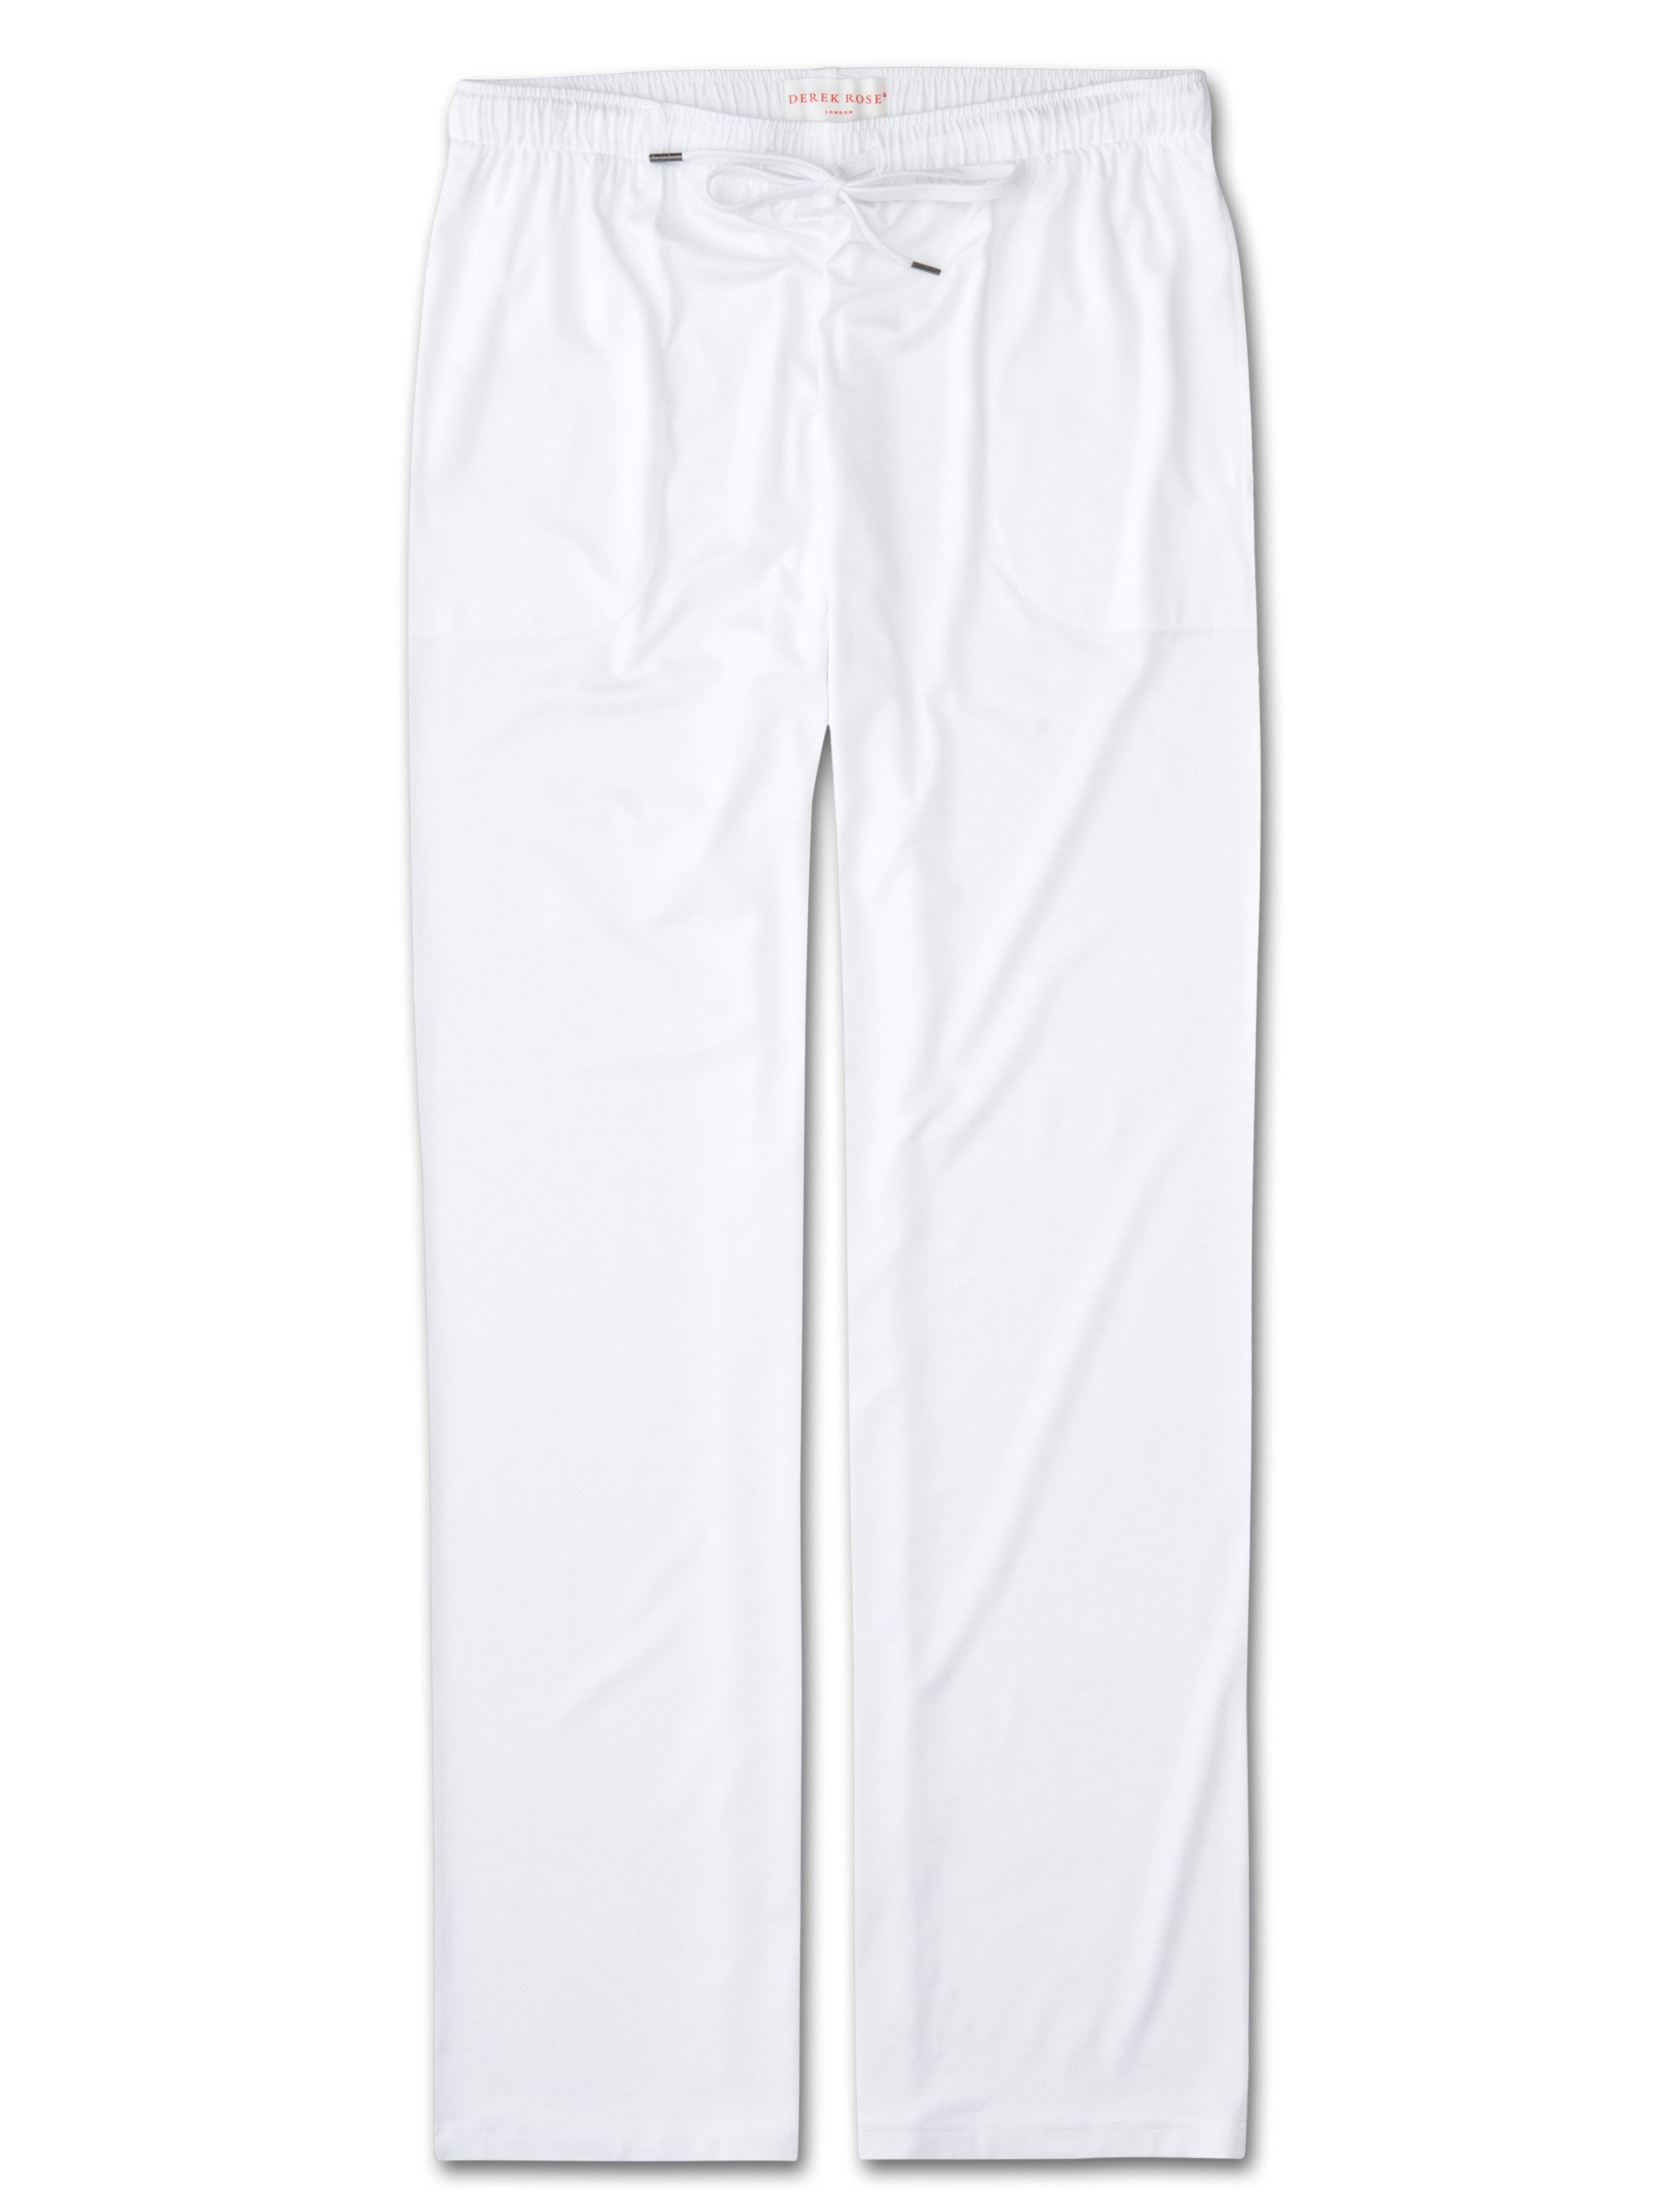 Men's Jersey Trousers Basel Micro Modal Stretch White